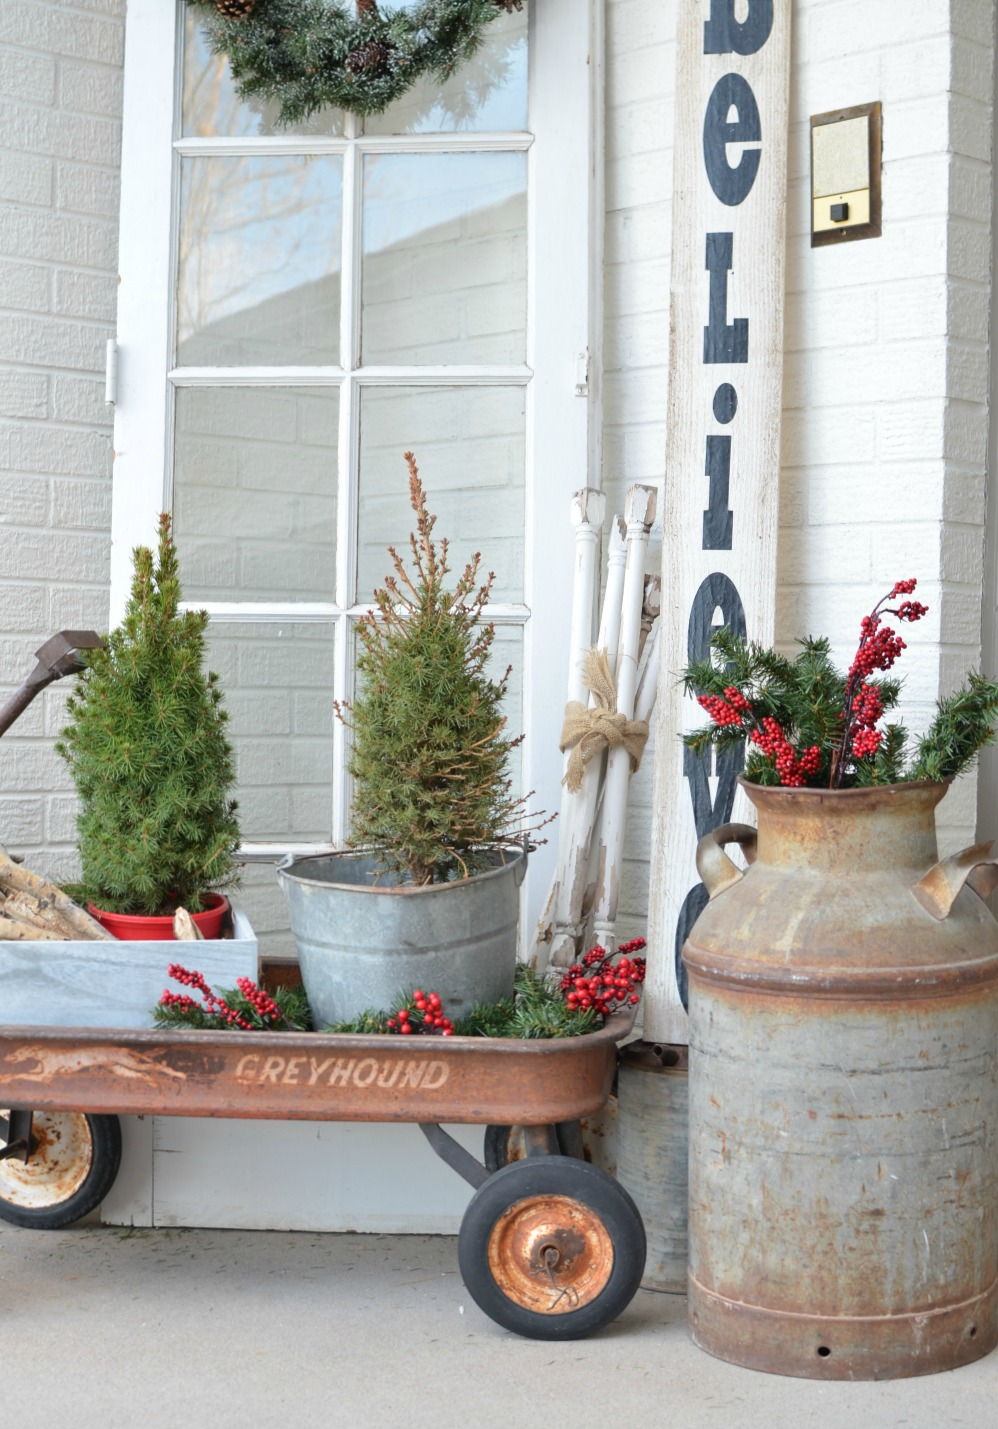 15 Best Images About Front Porch Ideas On Pinterest: Christmas On The Front Porch